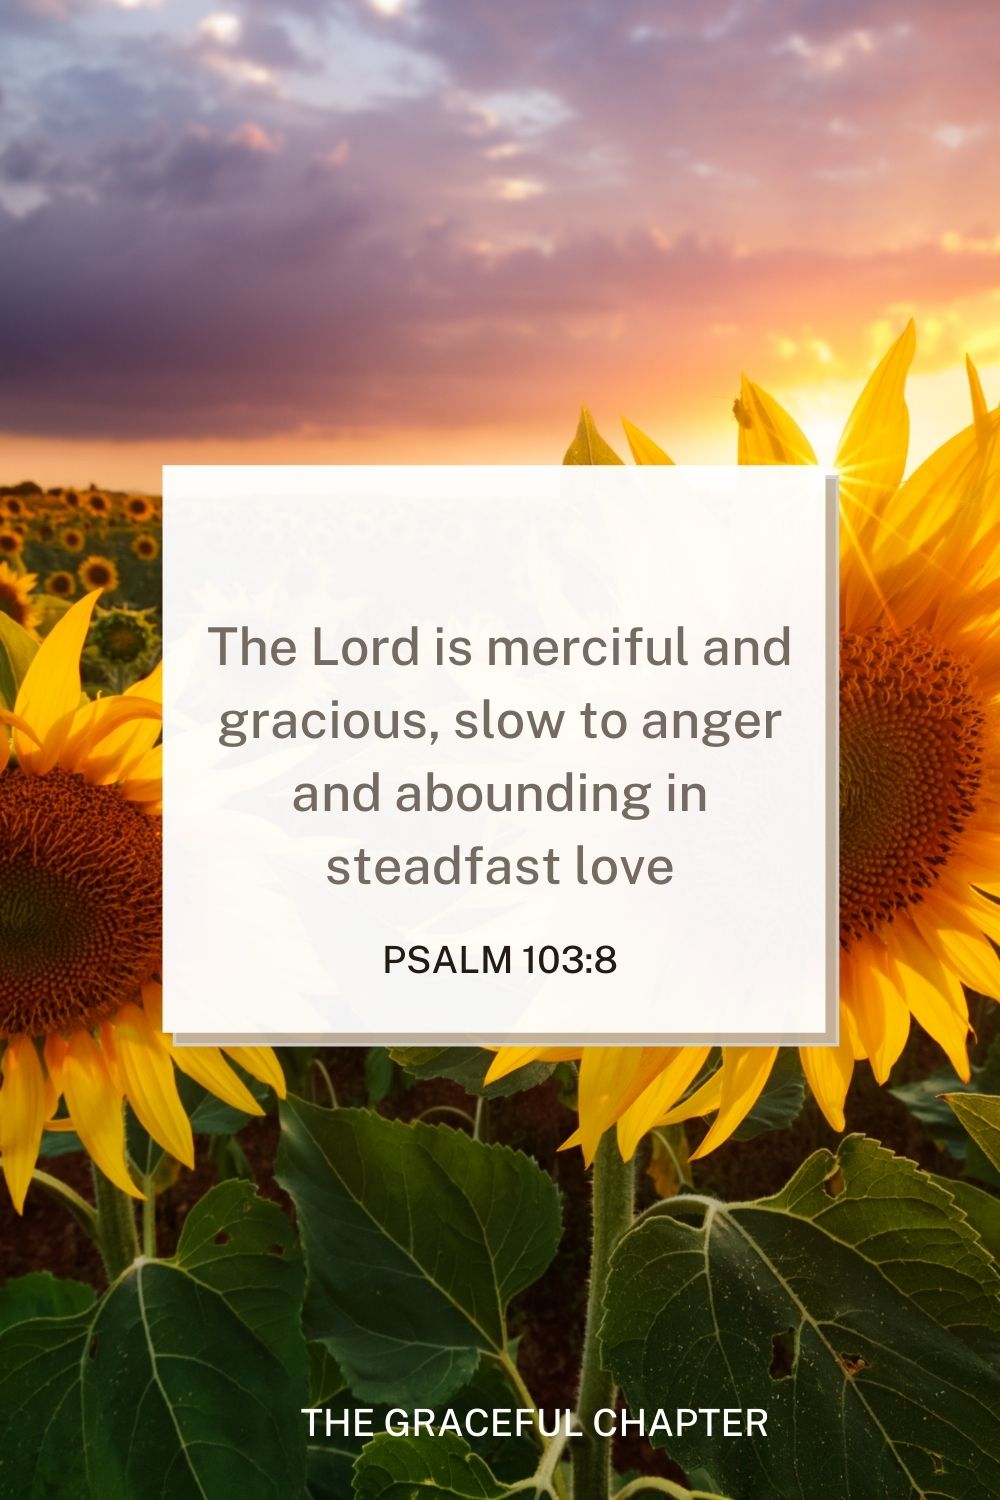 The Lord is merciful and gracious, slow to anger and abounding in steadfast love Psalm 103:8